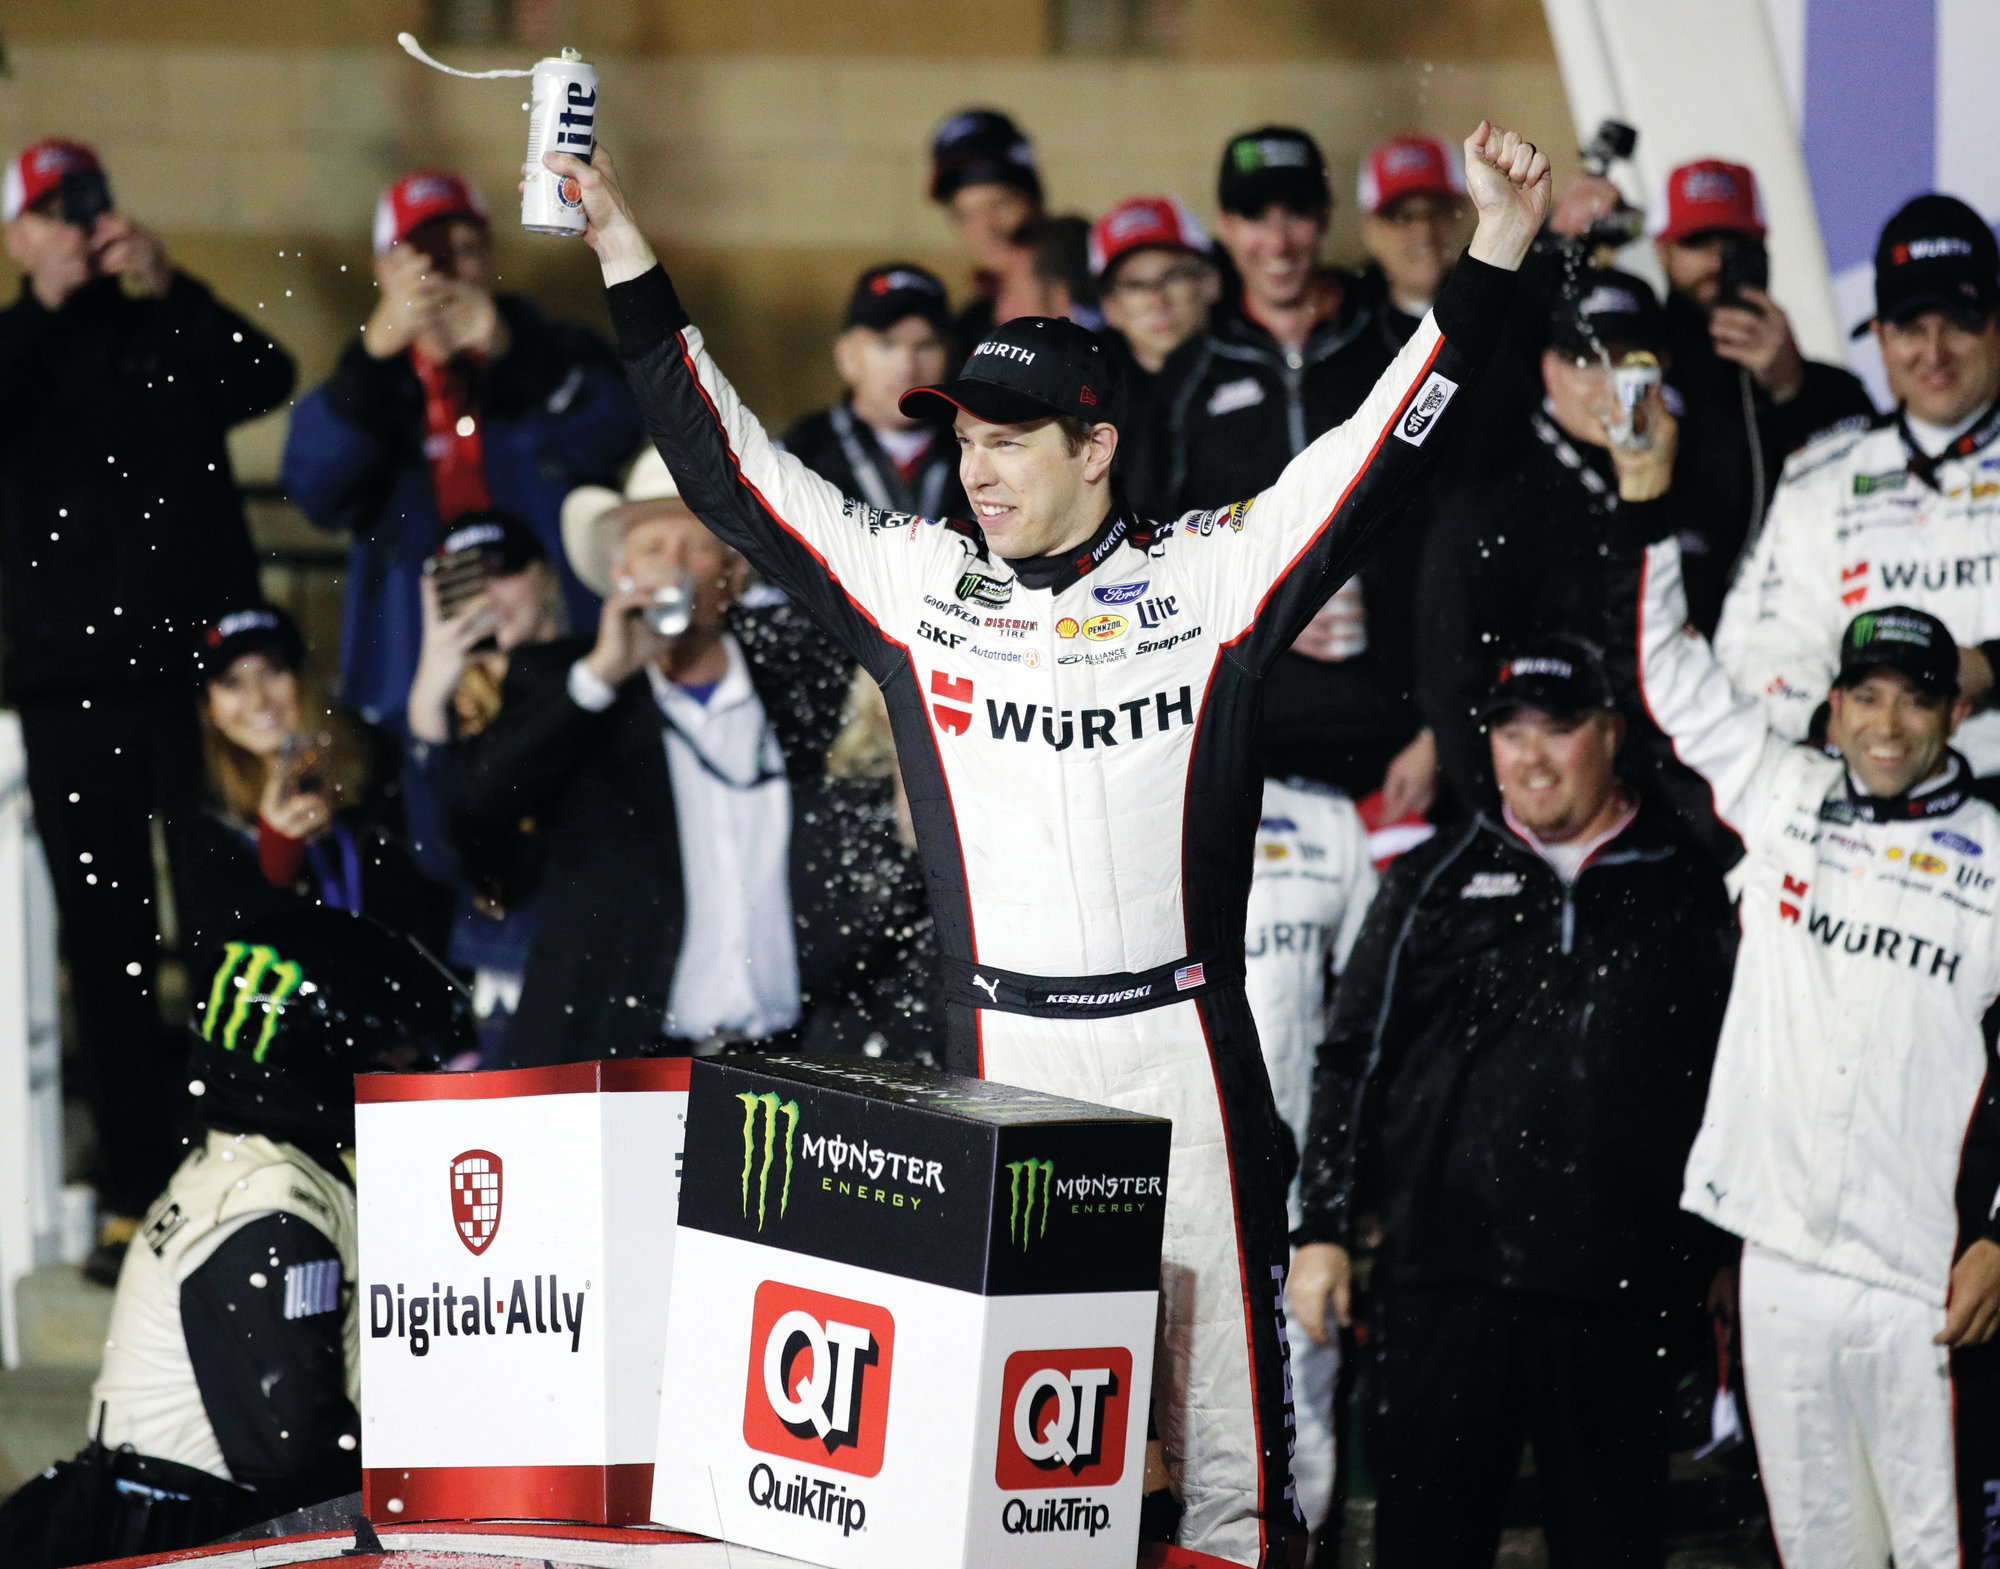 Brad Keselowski celebrates his Monster Energy Cup Series victory at Kansas Speedway in Kansas City, Kansas, on Saturday. The month of May is a big month for both NASCAR and the Indy Racing League.